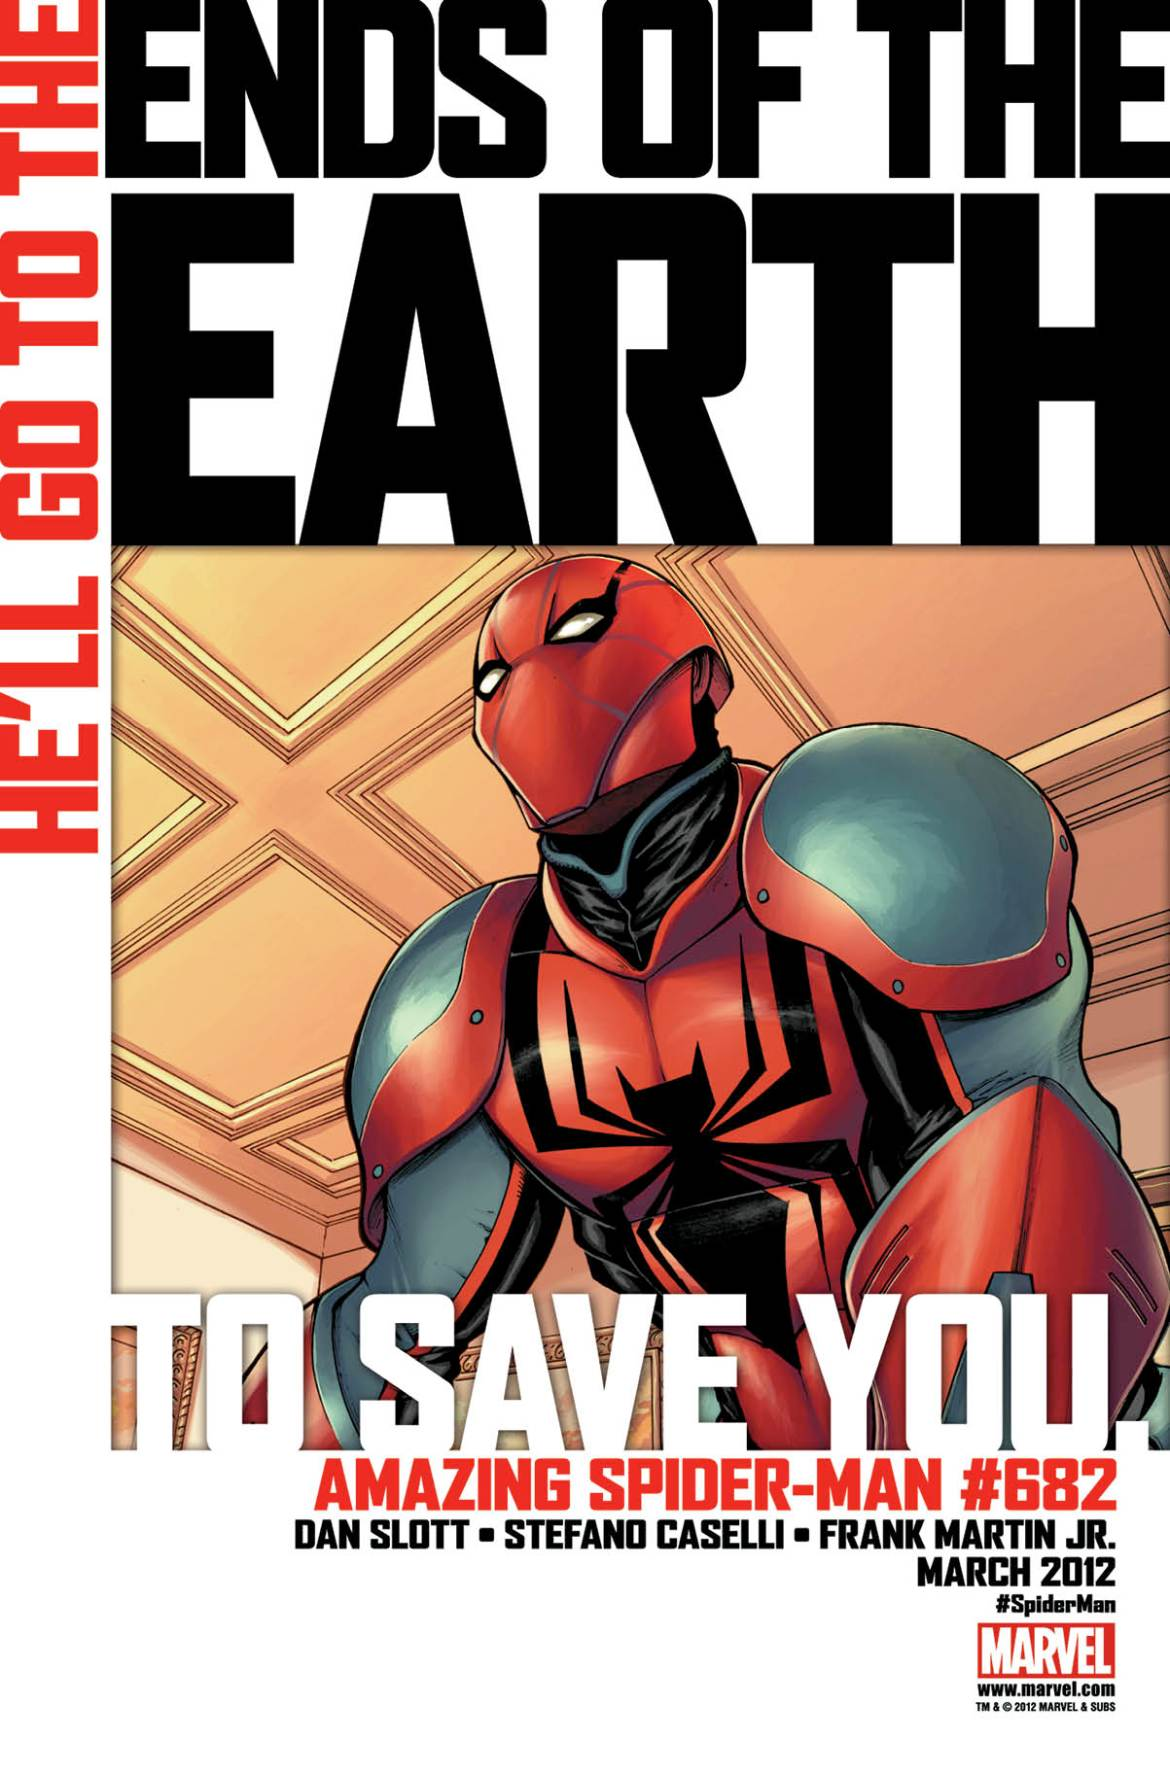 ASM_EndsOfTheEarth4 Mysterio takes Spider-Man to THE ENDS OF THE EARTH